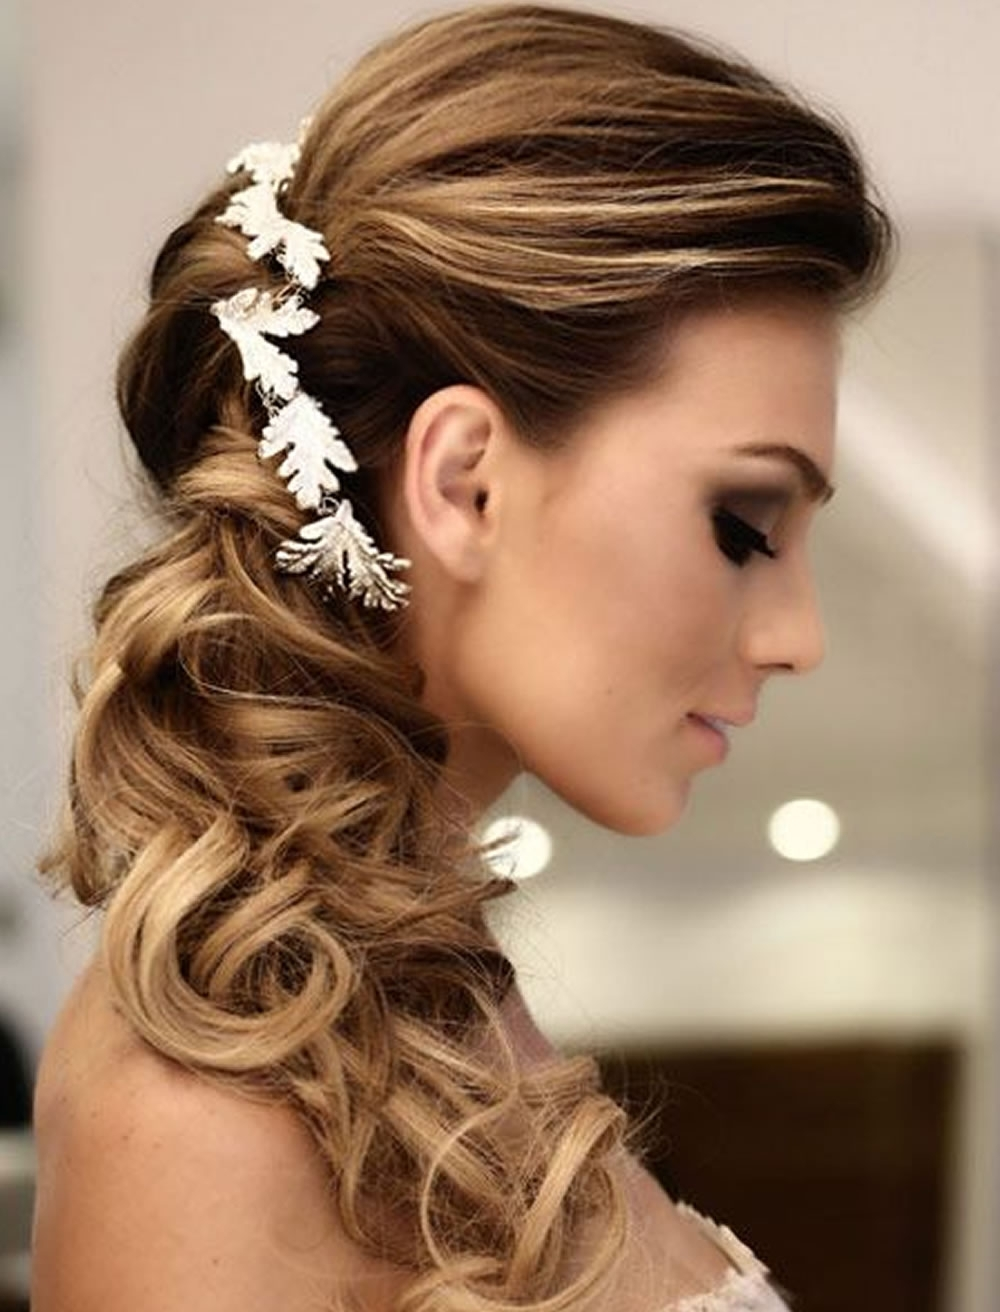 2018 Summer Wedding Hairstyles For Long Hair Regarding Very Stylish Wedding Hairstyles For Long Hair 2018 2019 – Hairstyles (View 1 of 15)